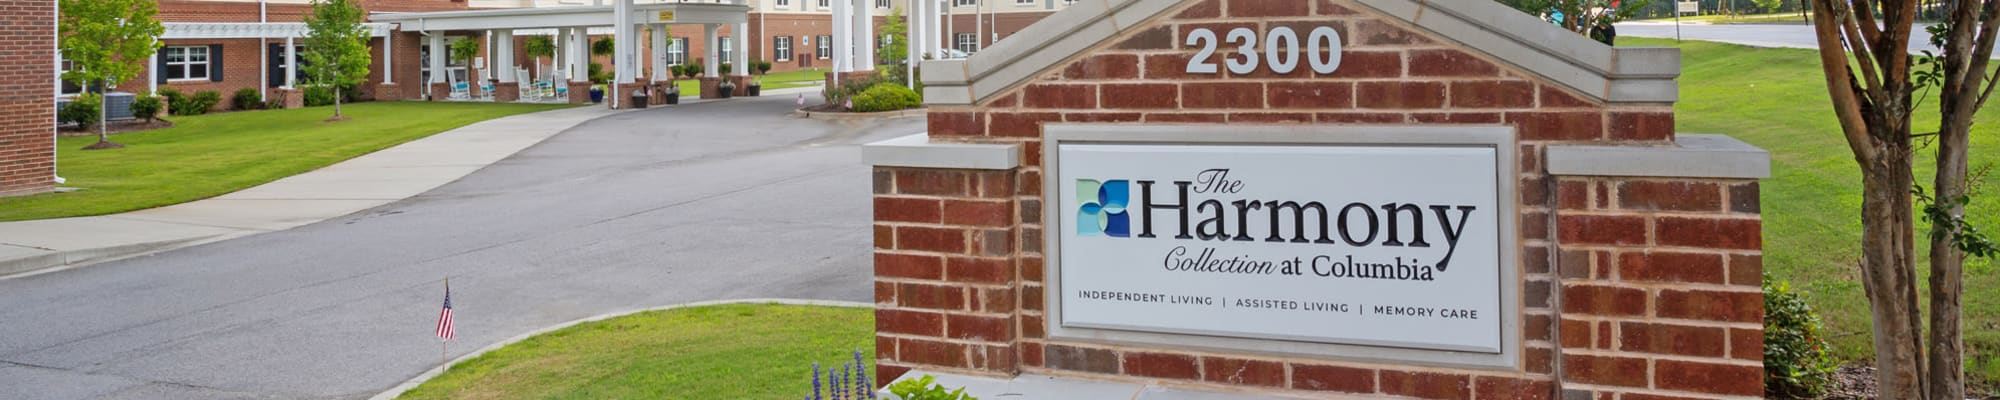 Contact Us at The Harmony Collection at Columbia in Columbia, South Carolina